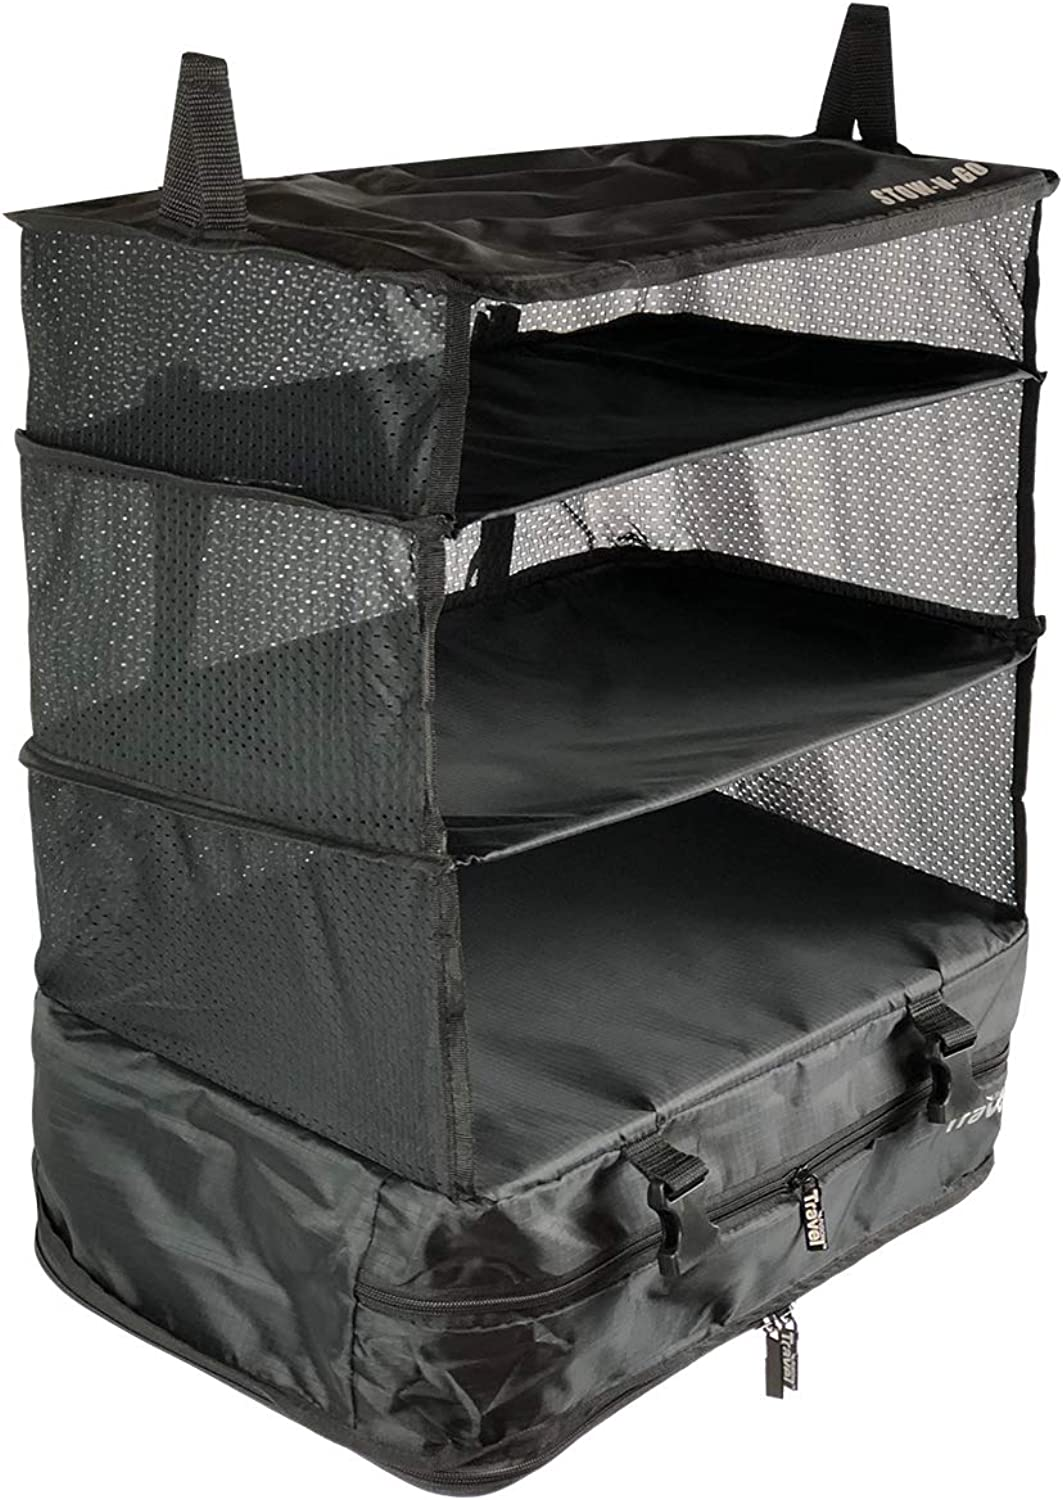 Stow-N-Go Portable Luggage System Hanging Shelves and Travel Organizer Large Black